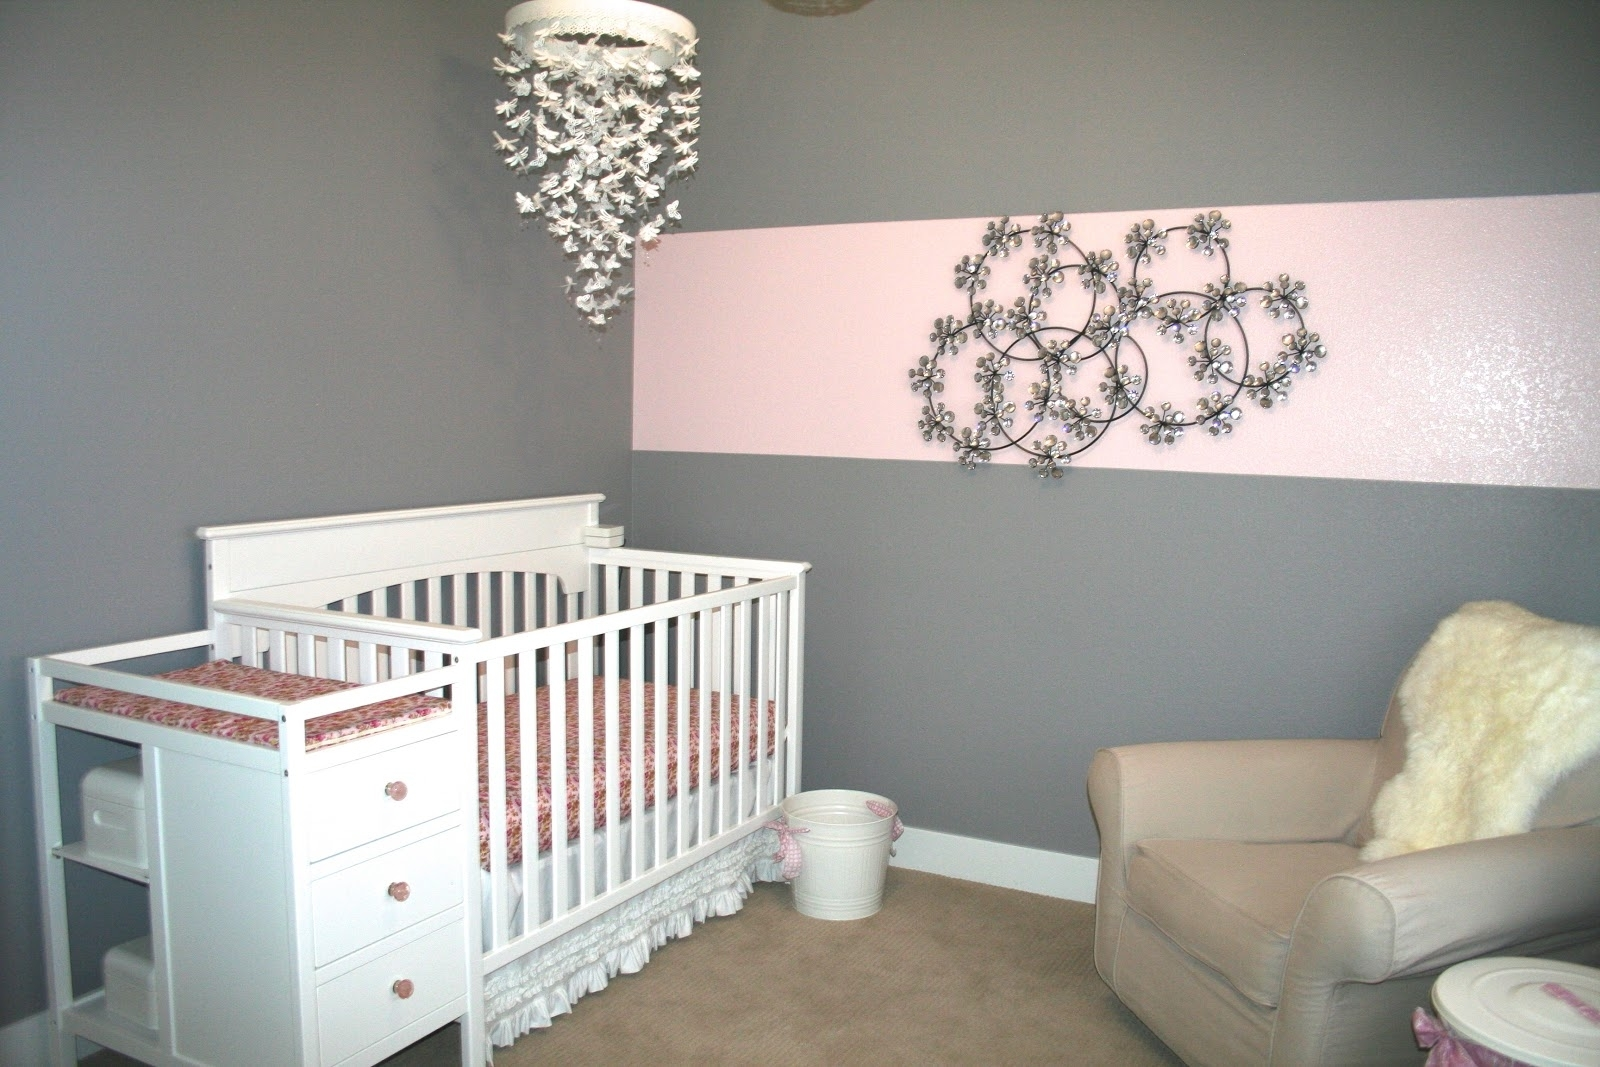 2017 Chandeliers For Baby Girl Room Pertaining To Baby Nursery Decor: Pictures Chandeliers For Baby Girl Nursery (View 4 of 15)